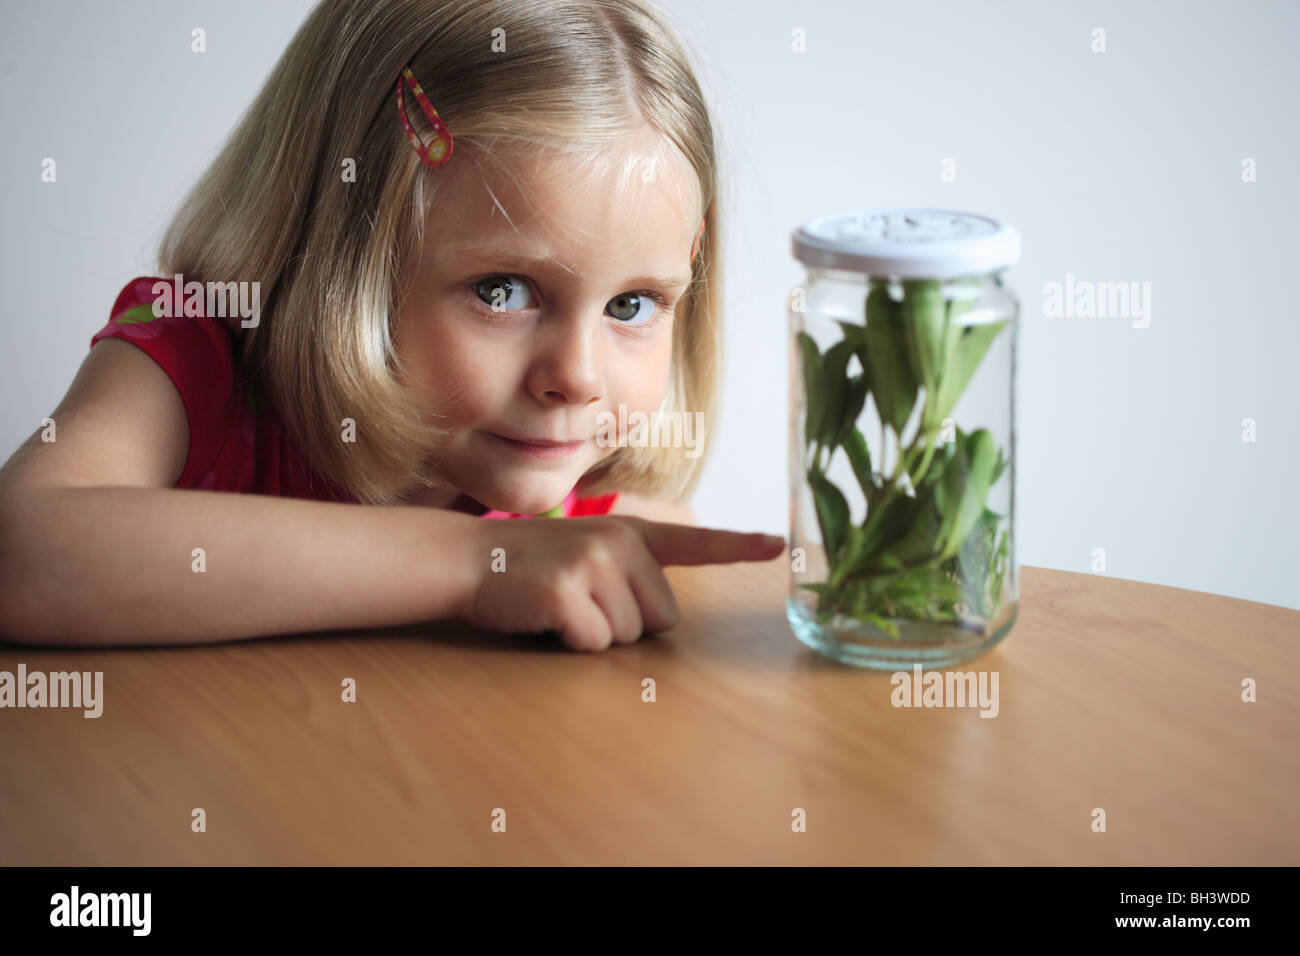 Young girl pointing to a jar filled with leaves and insects, smiling - Stock Image